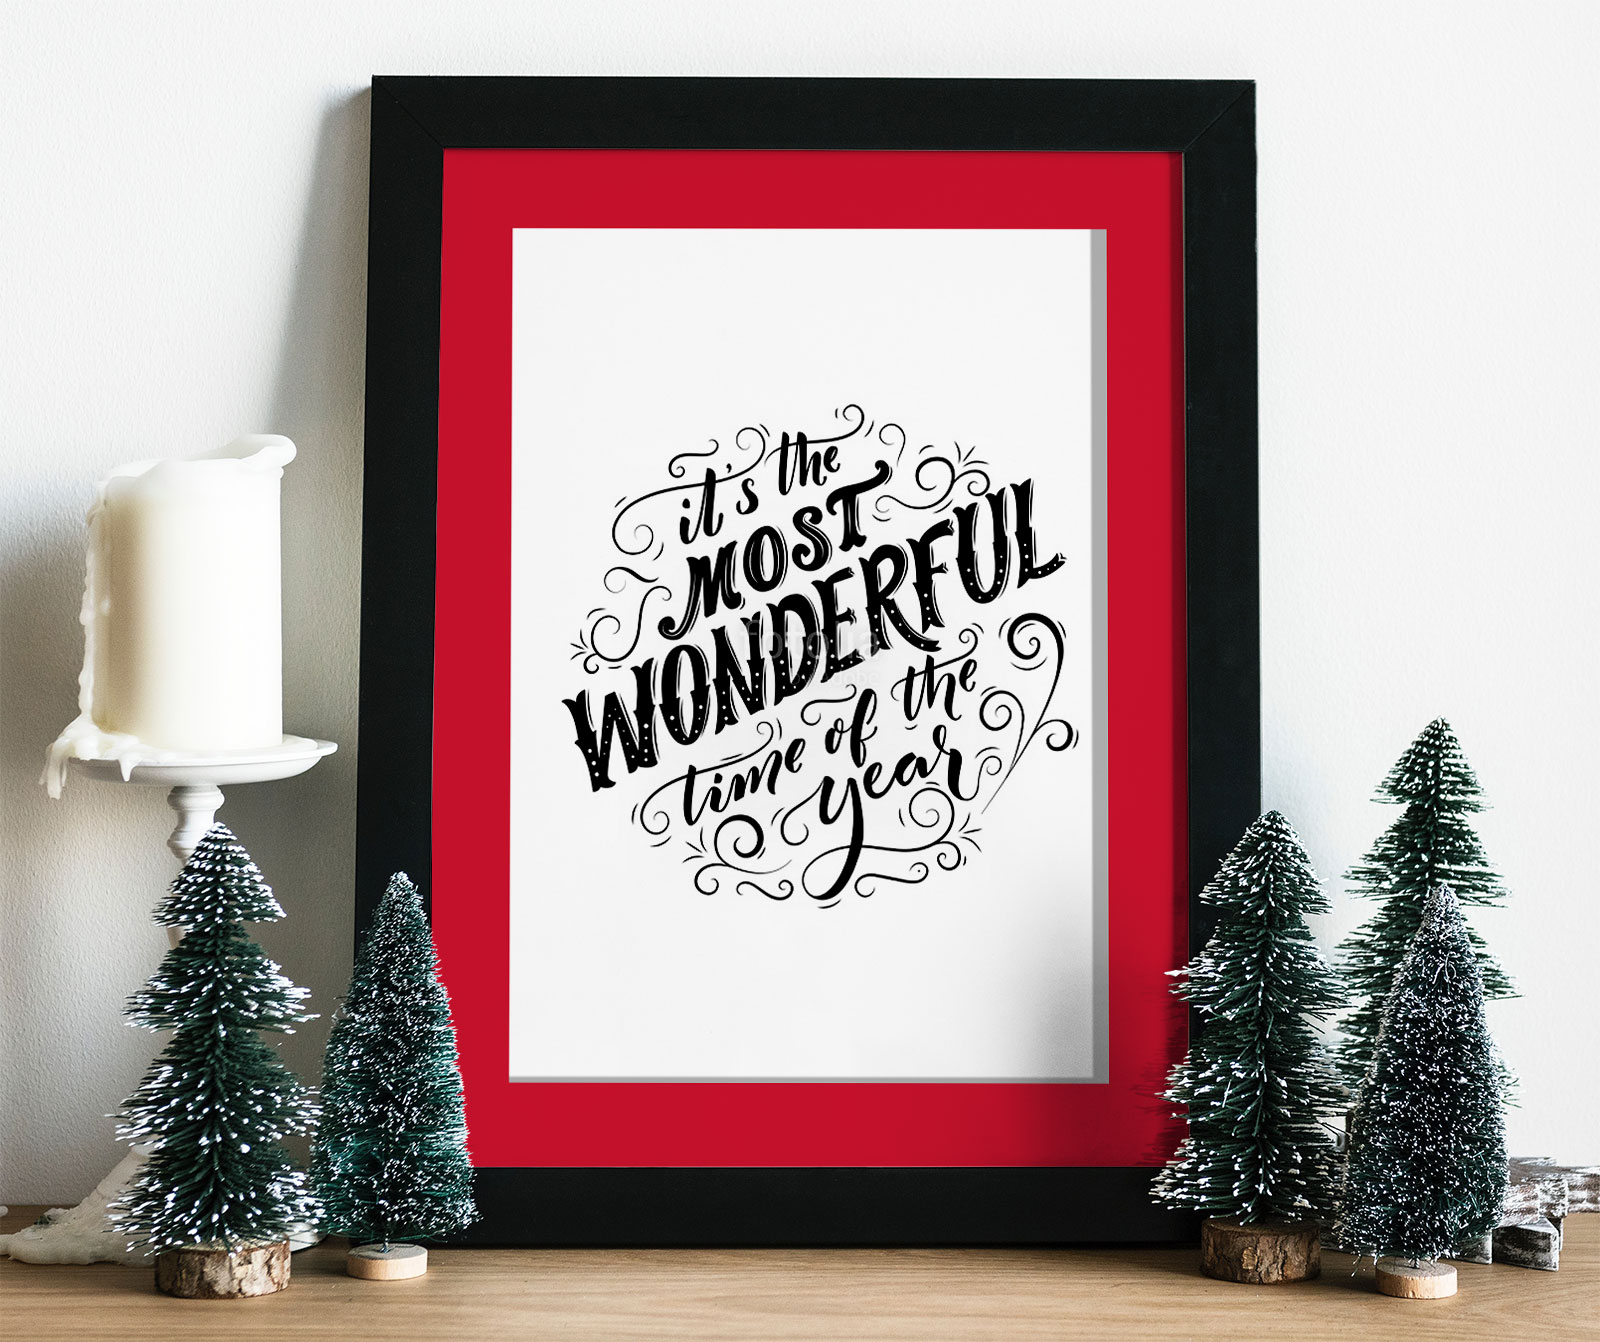 Free-Photo-Frame-Mockup-PSD-for-Christmas-Related-Artworks-2